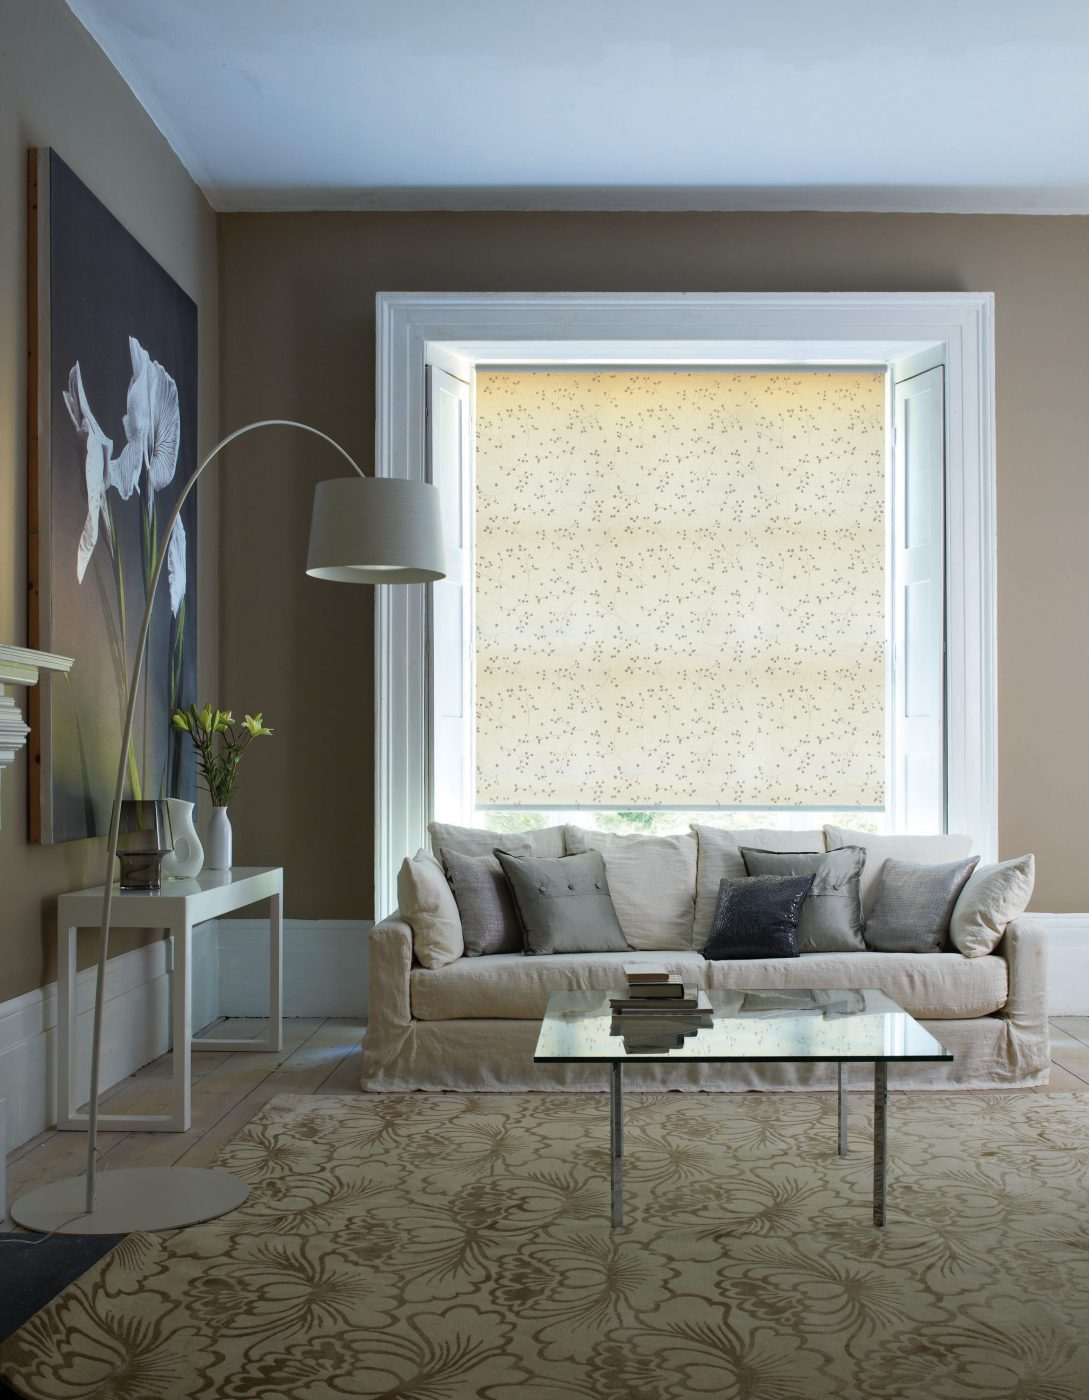 Hardwired Electric Blinds Mains Powered Blinds The